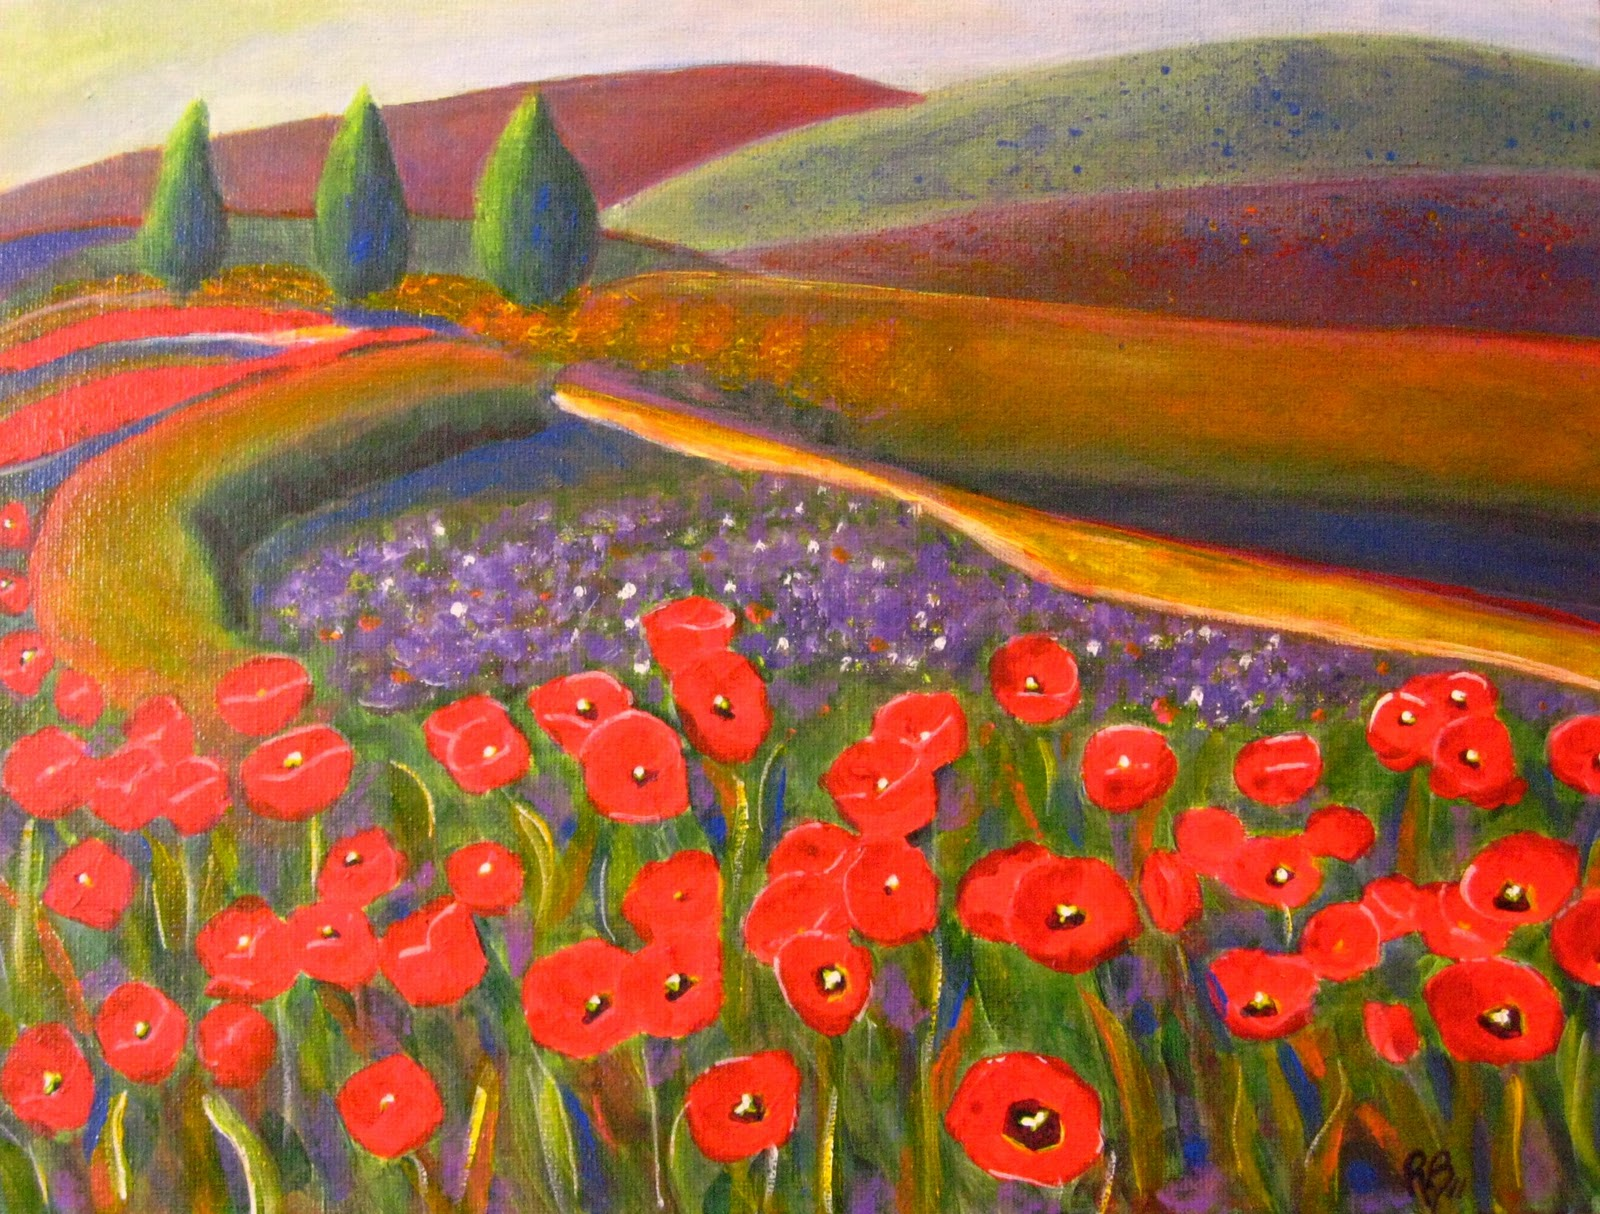 Robie Benve Art Colorful Landscape Acrylic Painting With Tulips